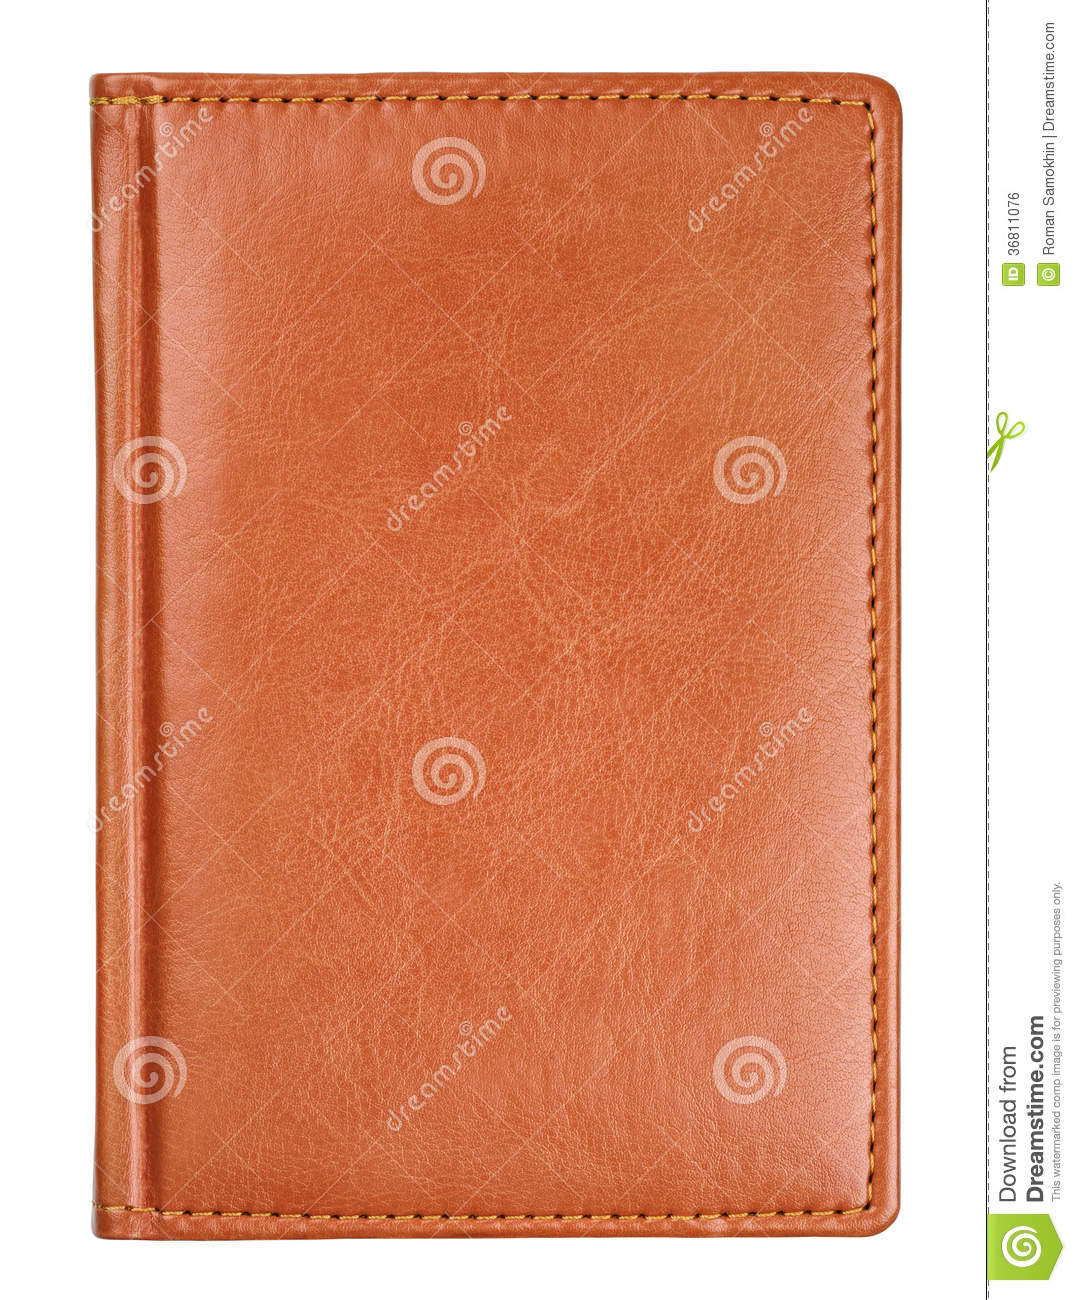 School Bookcover Design: Brown Leather Diary Book Cover Royalty Free Stock Image